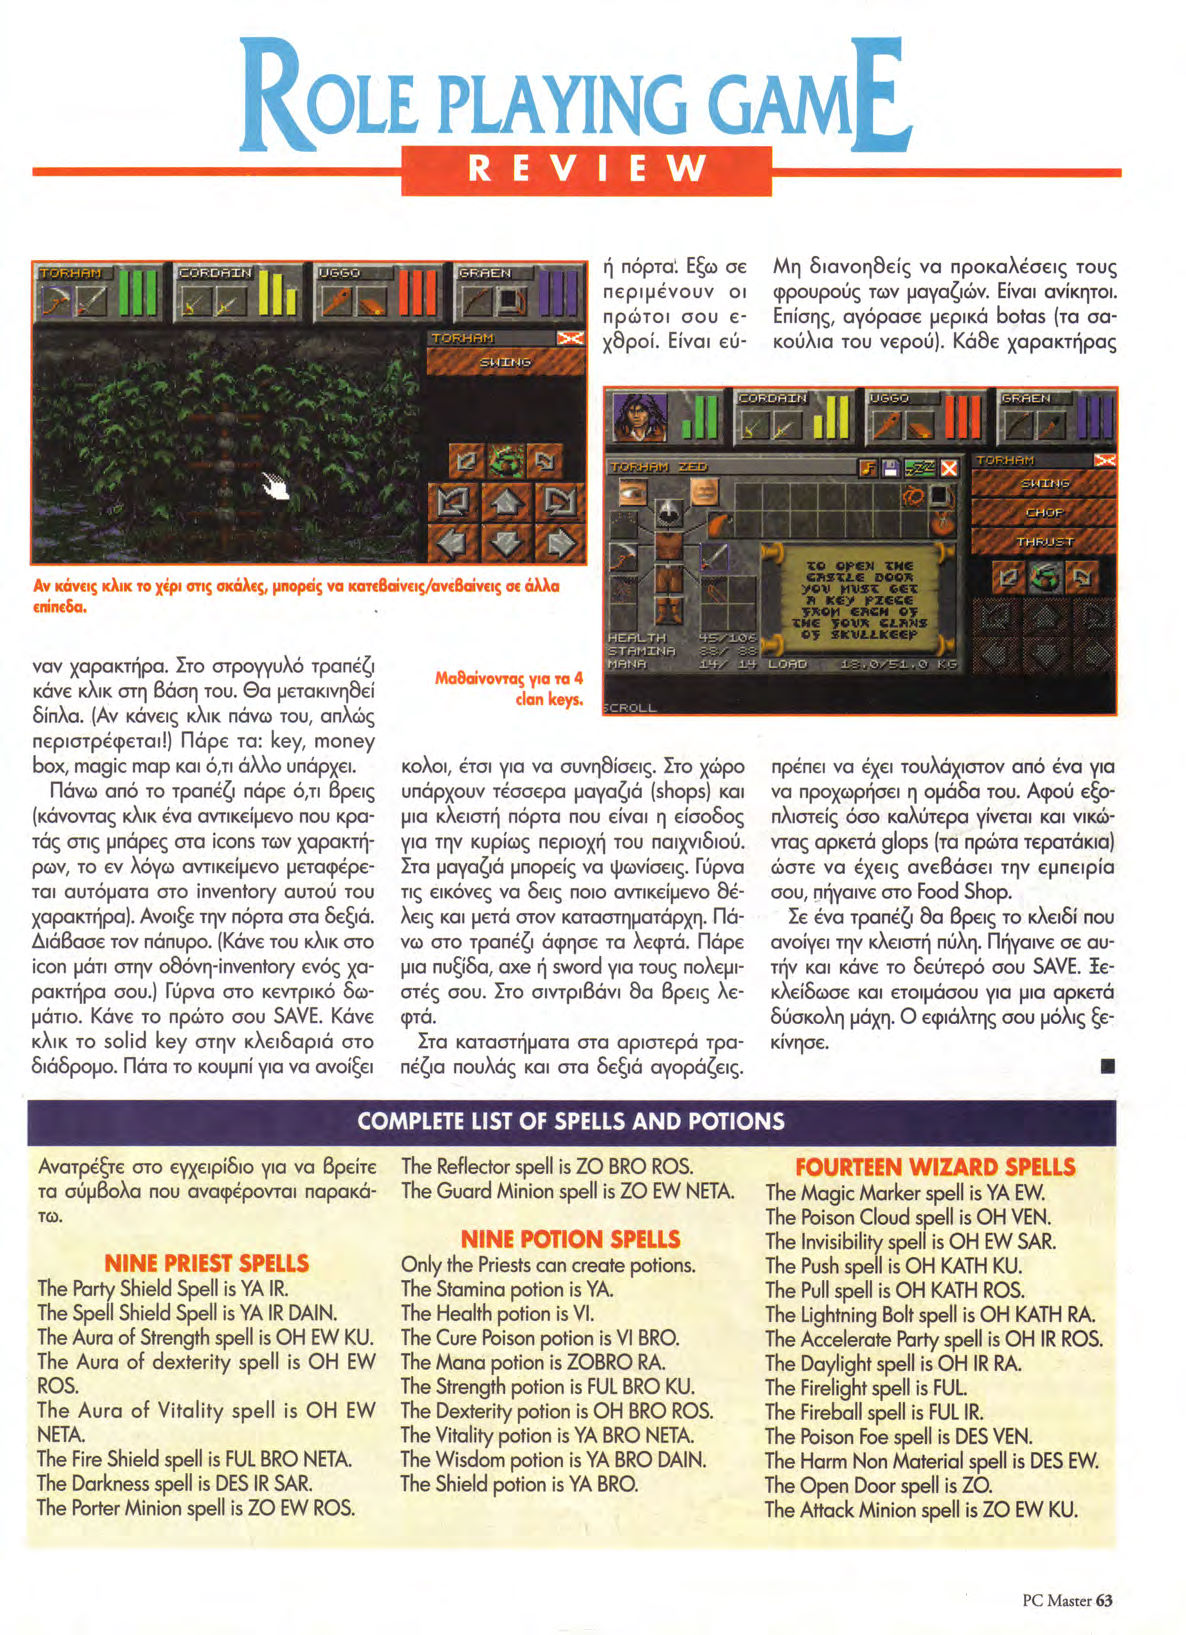 Dungeon Master II for PC Review published in Greek magazine 'PC Master', Issue #67 November 1995, Page 63